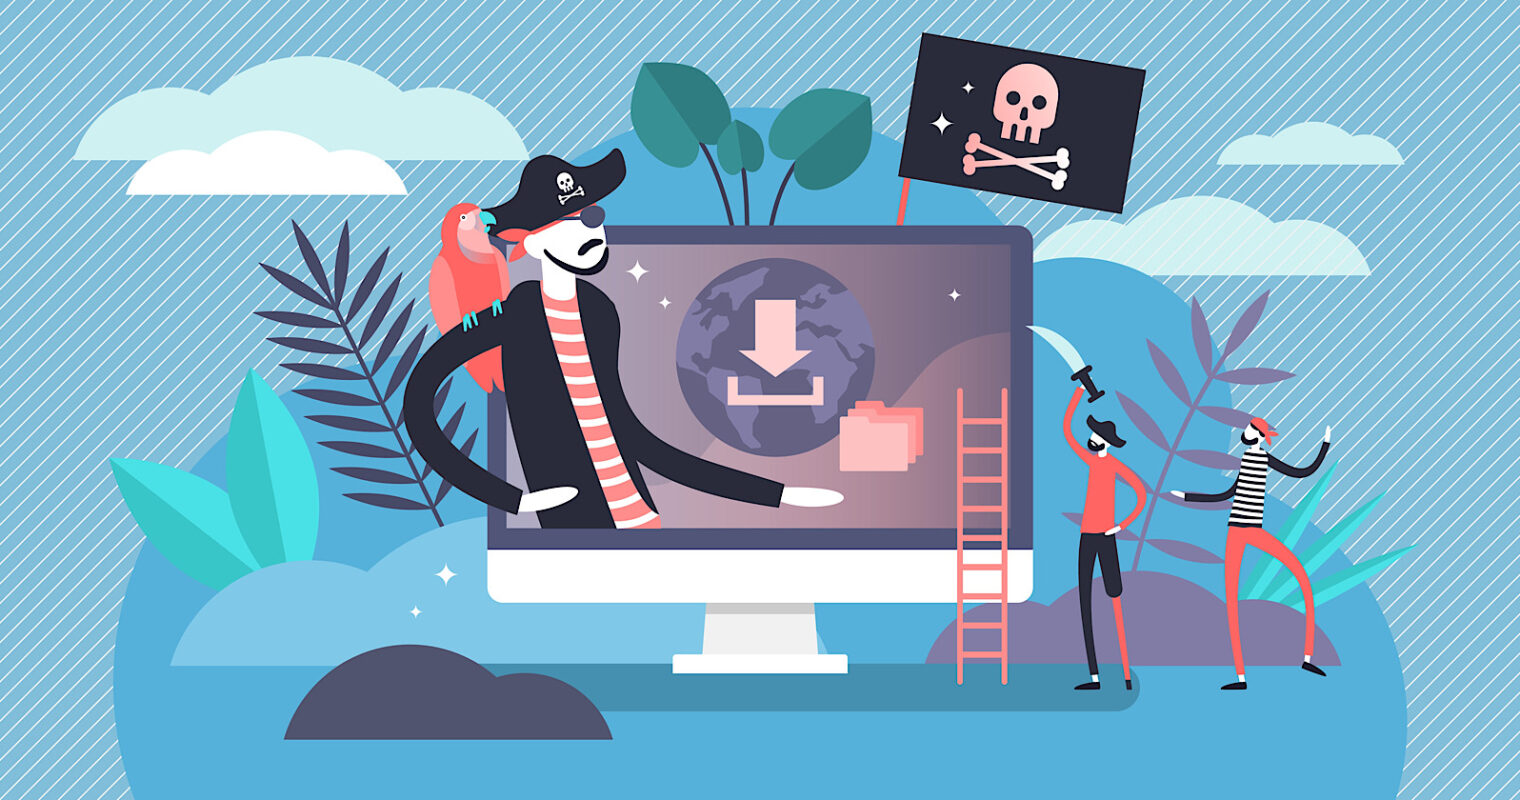 Google Search Traffic to Pirate Sites Down After Algorithm Updates